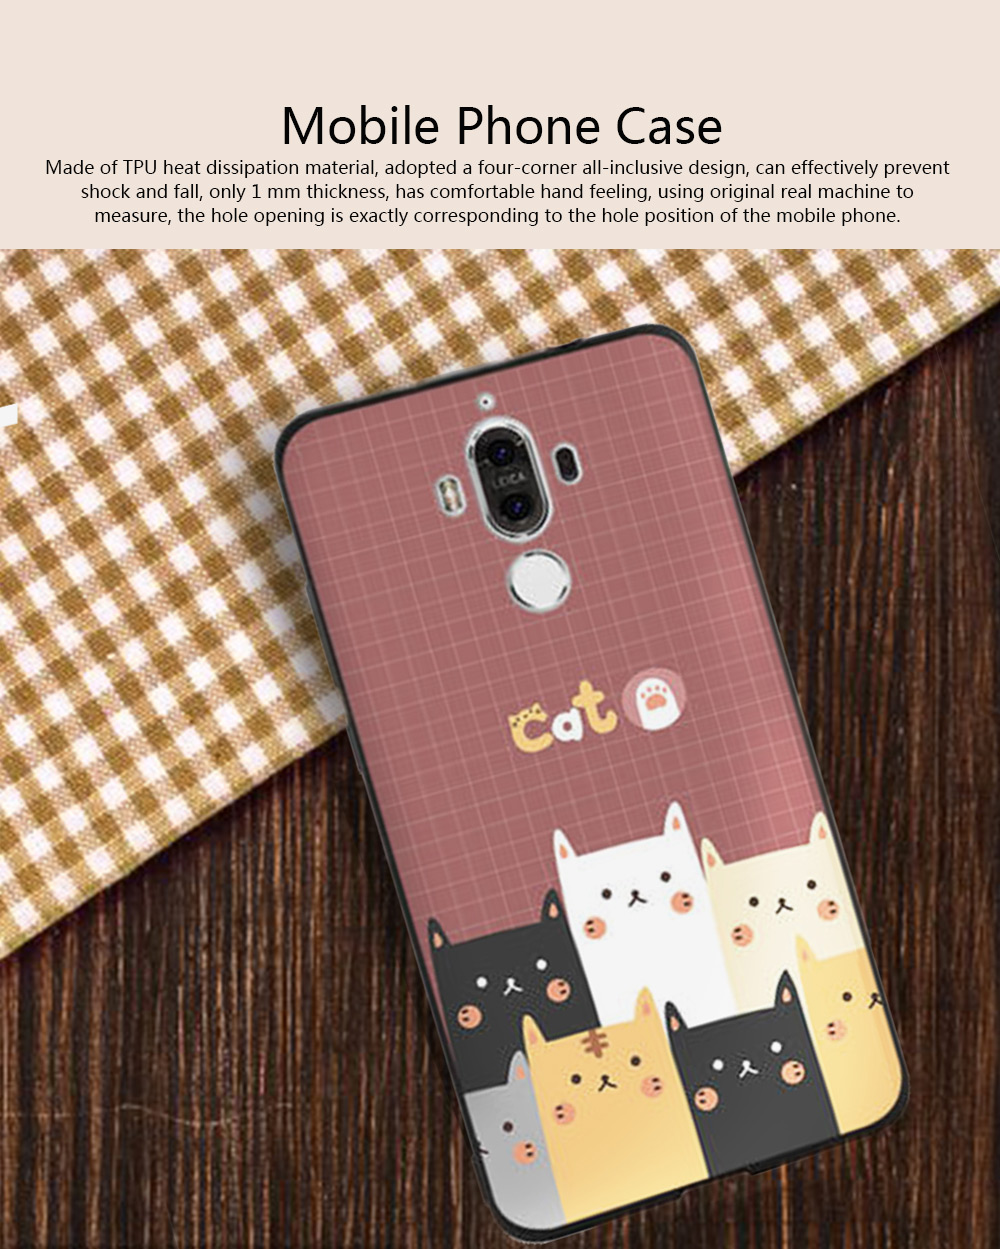 Cameo Brown Silicone Soft Shell for HUAWEI Mate 9 Pro, 10, 20 Pro, 20x All-inclusive Protection Fall Prevention Mobile Phone Case 0